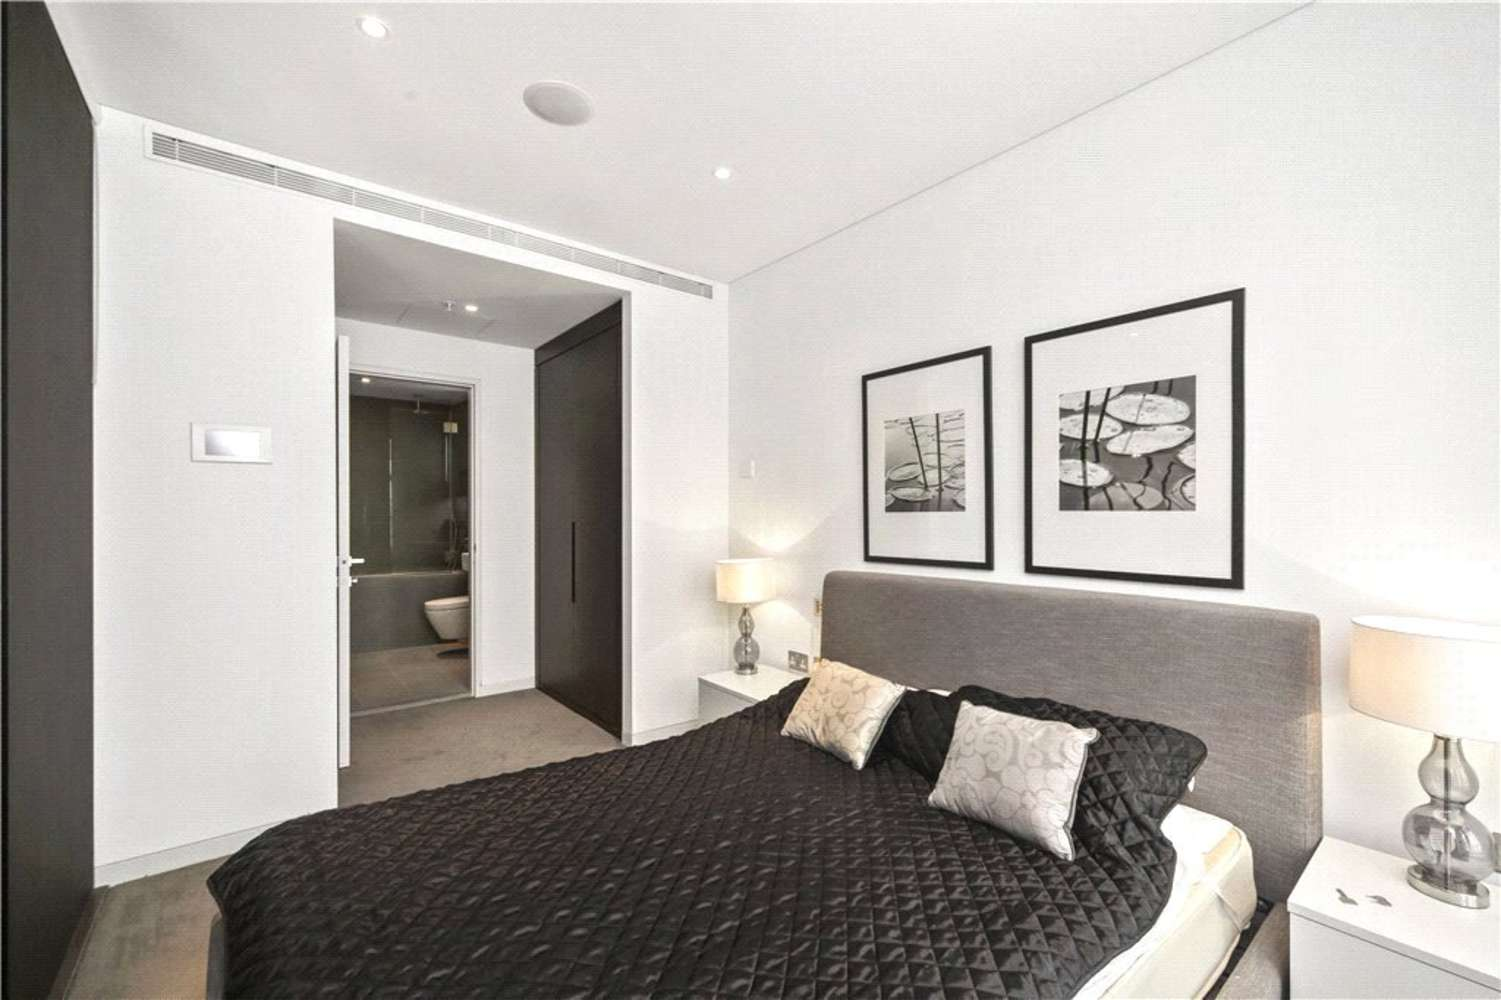 Apartment London, WC2R - Marconi House 335 Strand WC2R - 07